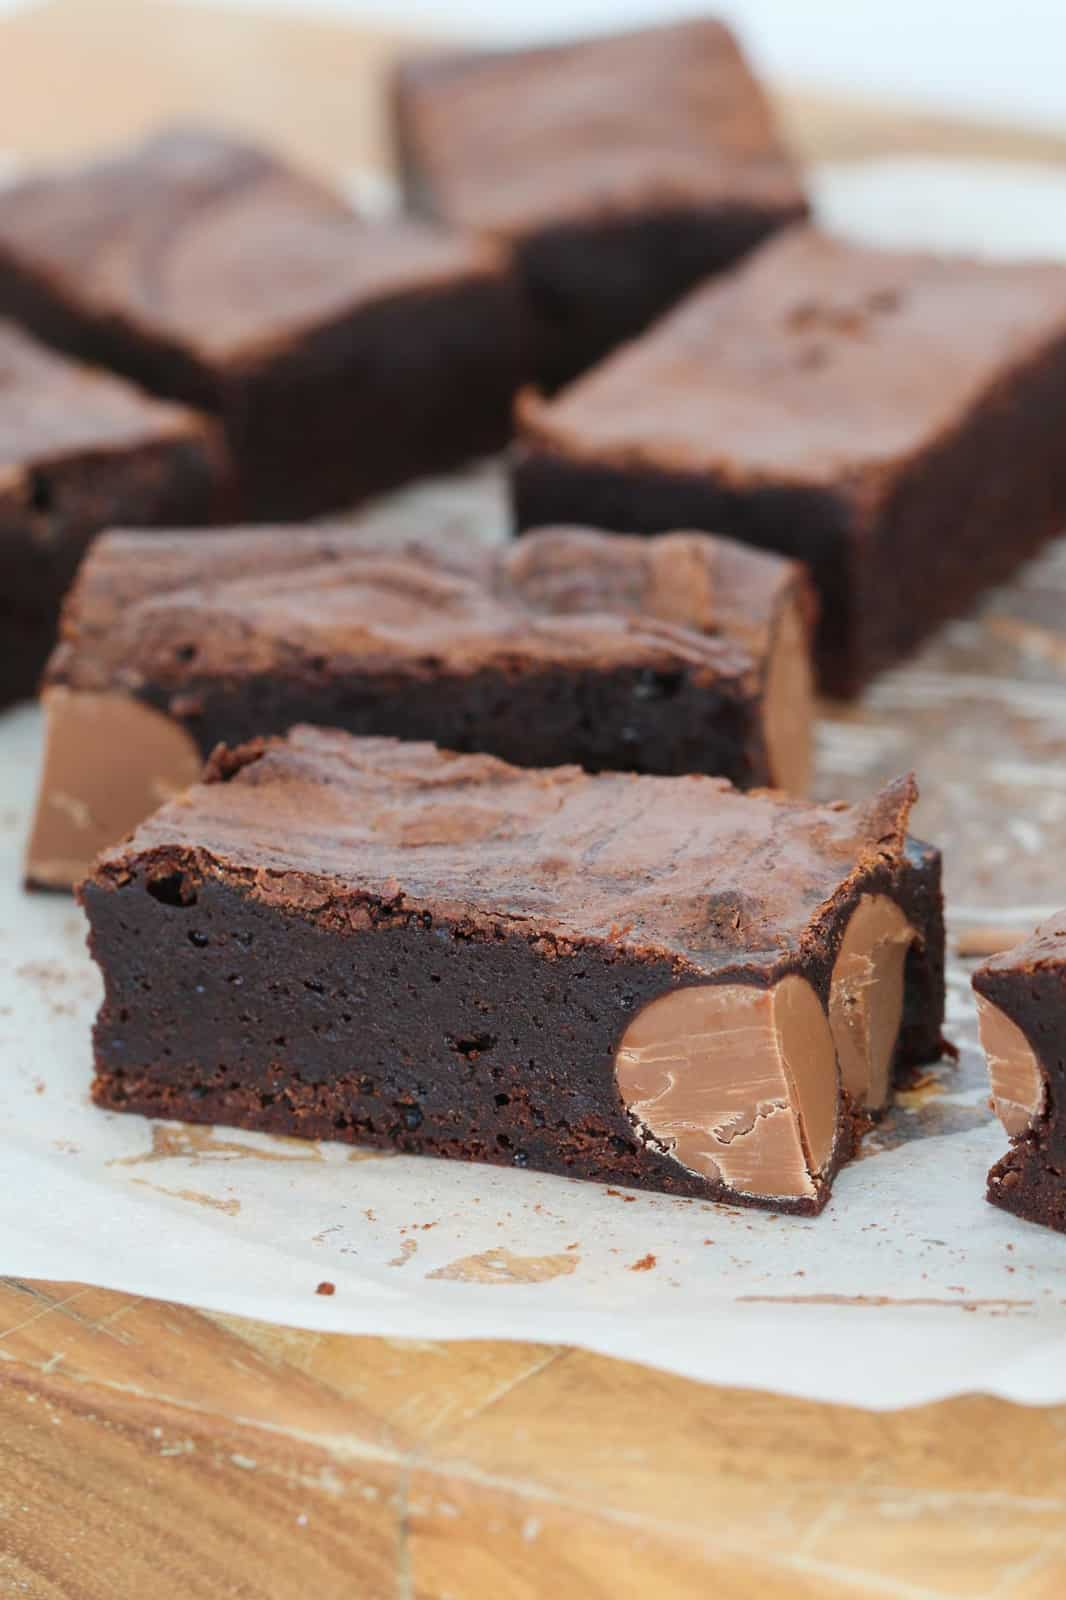 Slices of rich chocolate brownie with chocolate Easter eggs, on a chopping board.